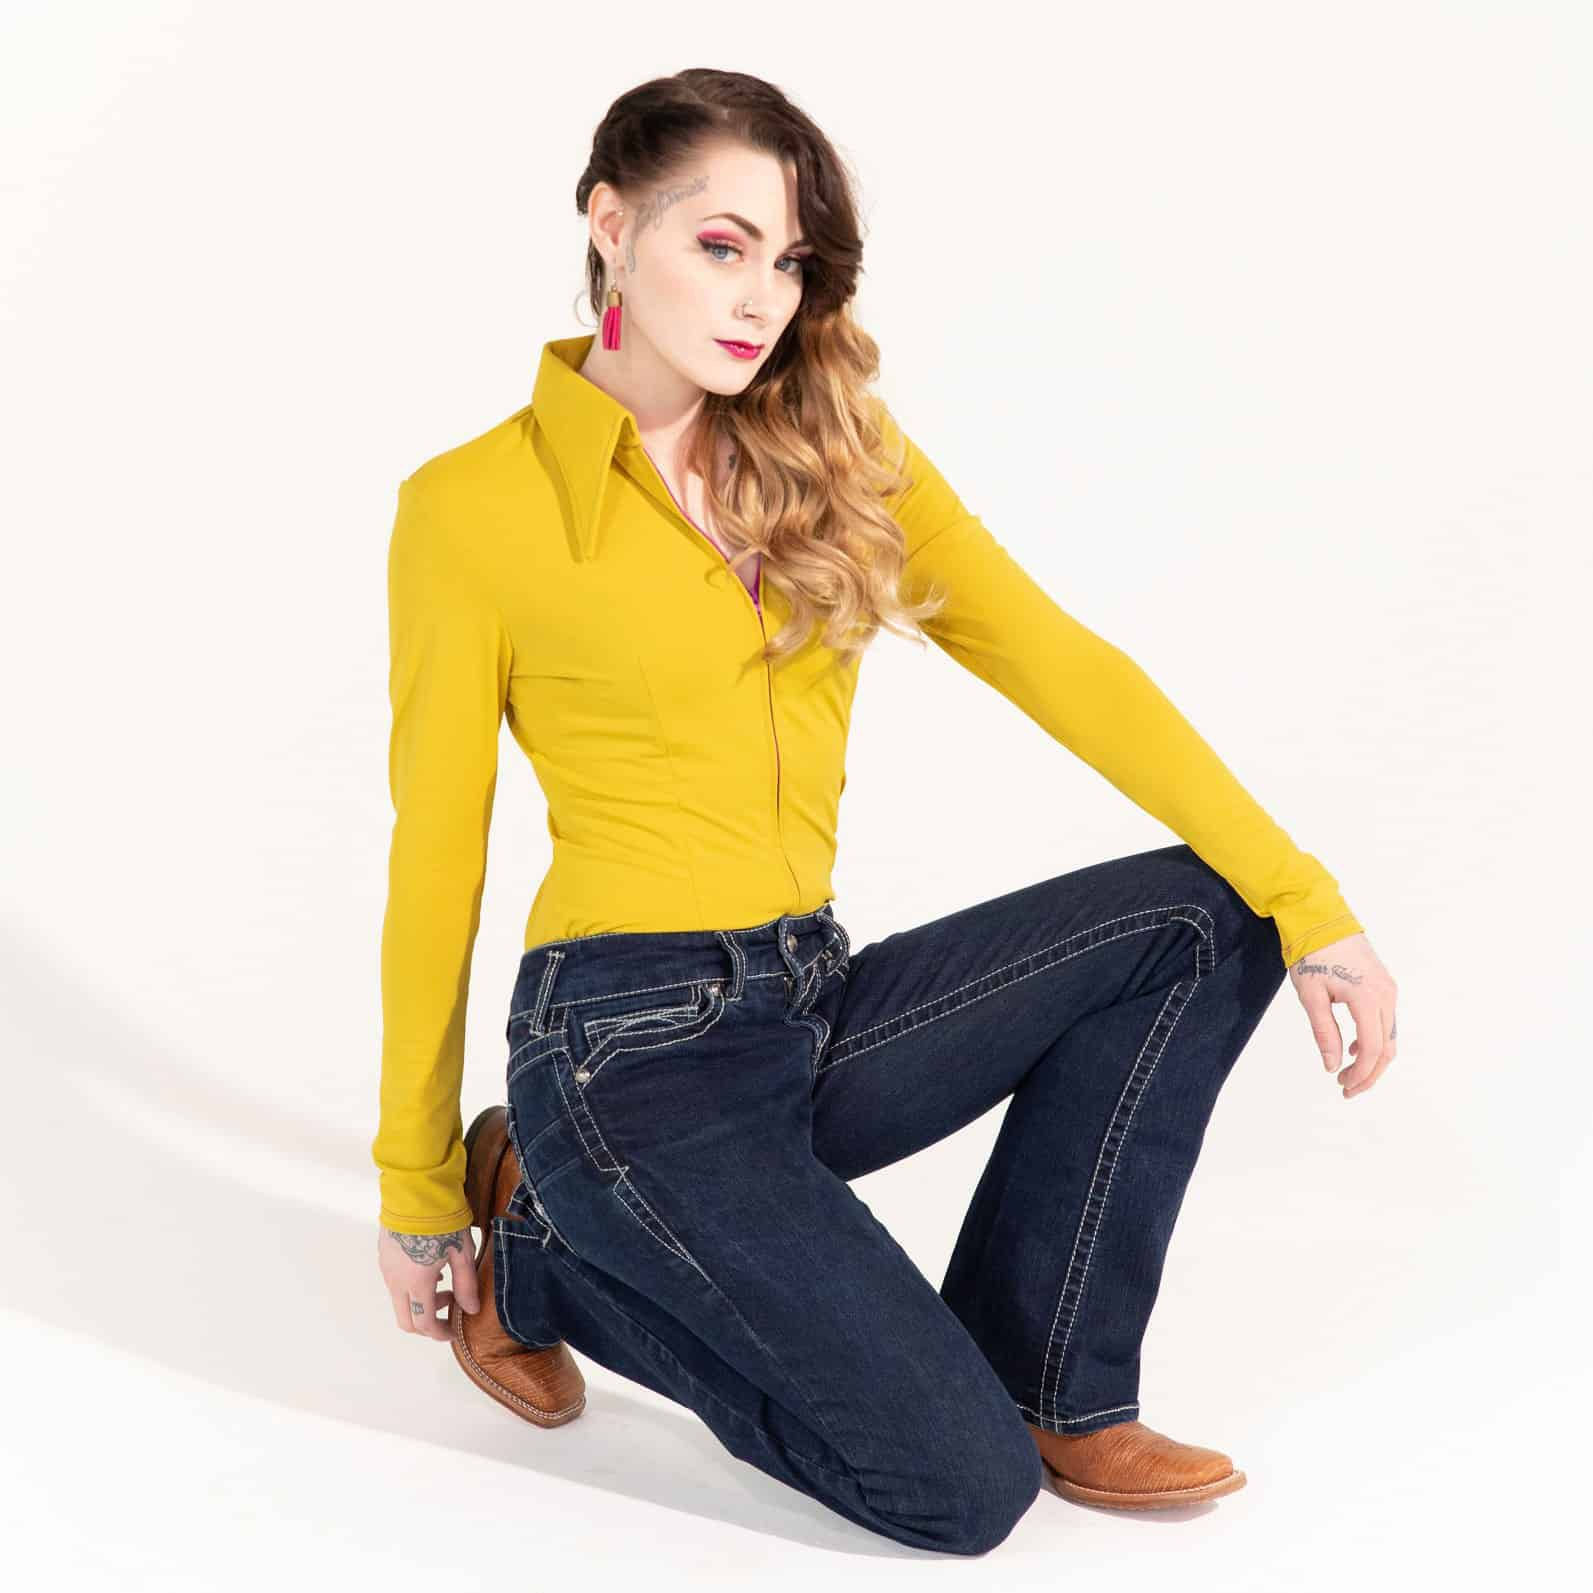 Mustard Solid (Yellow), $179 from Sundial Show clothes